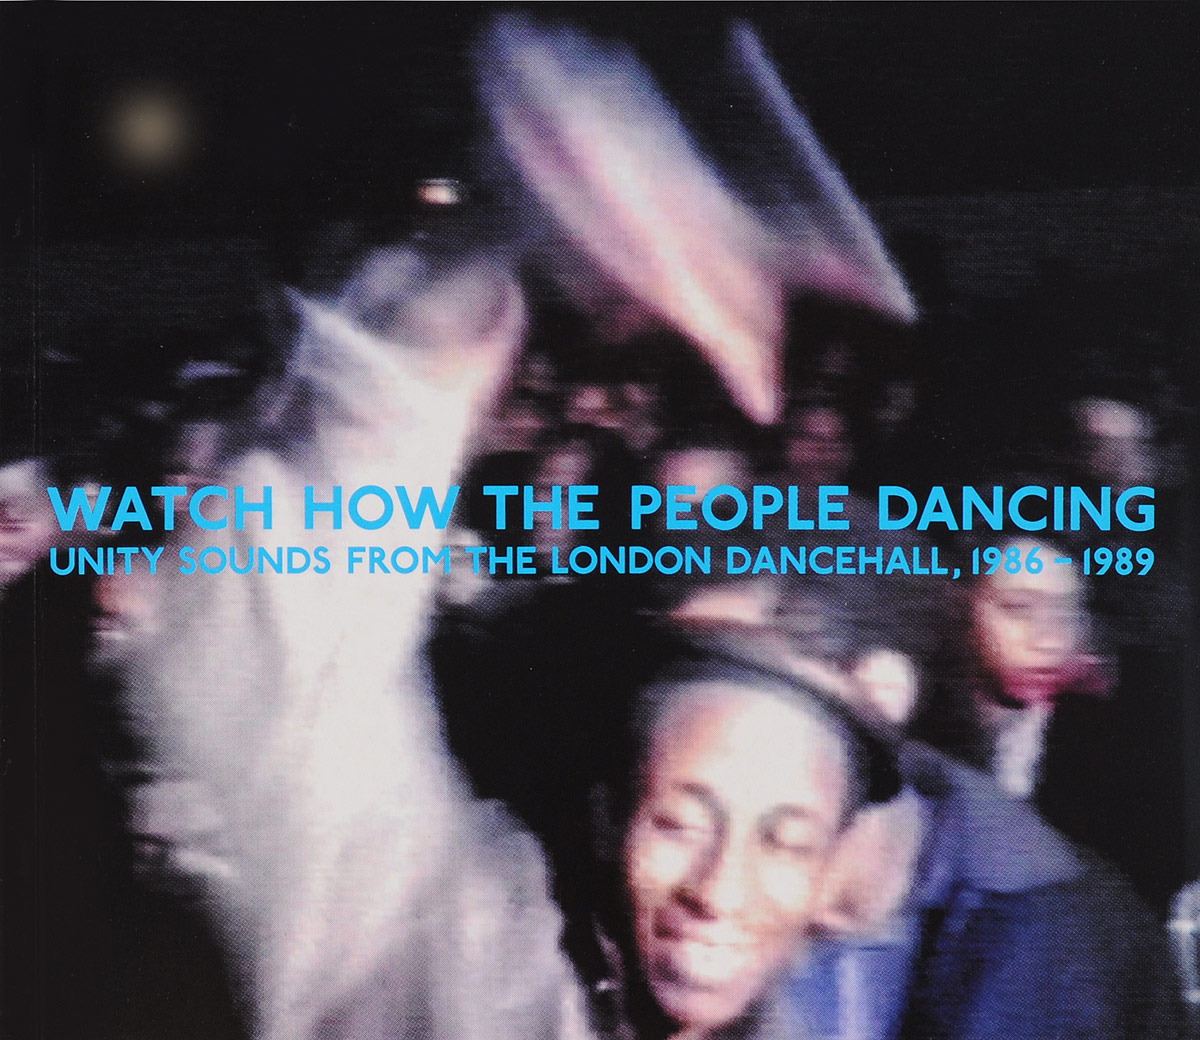 VARIOUS ARTISTS. WATCH HOW THE PEOPLE DANCING виниловая пластинка various artists john morales presents the m